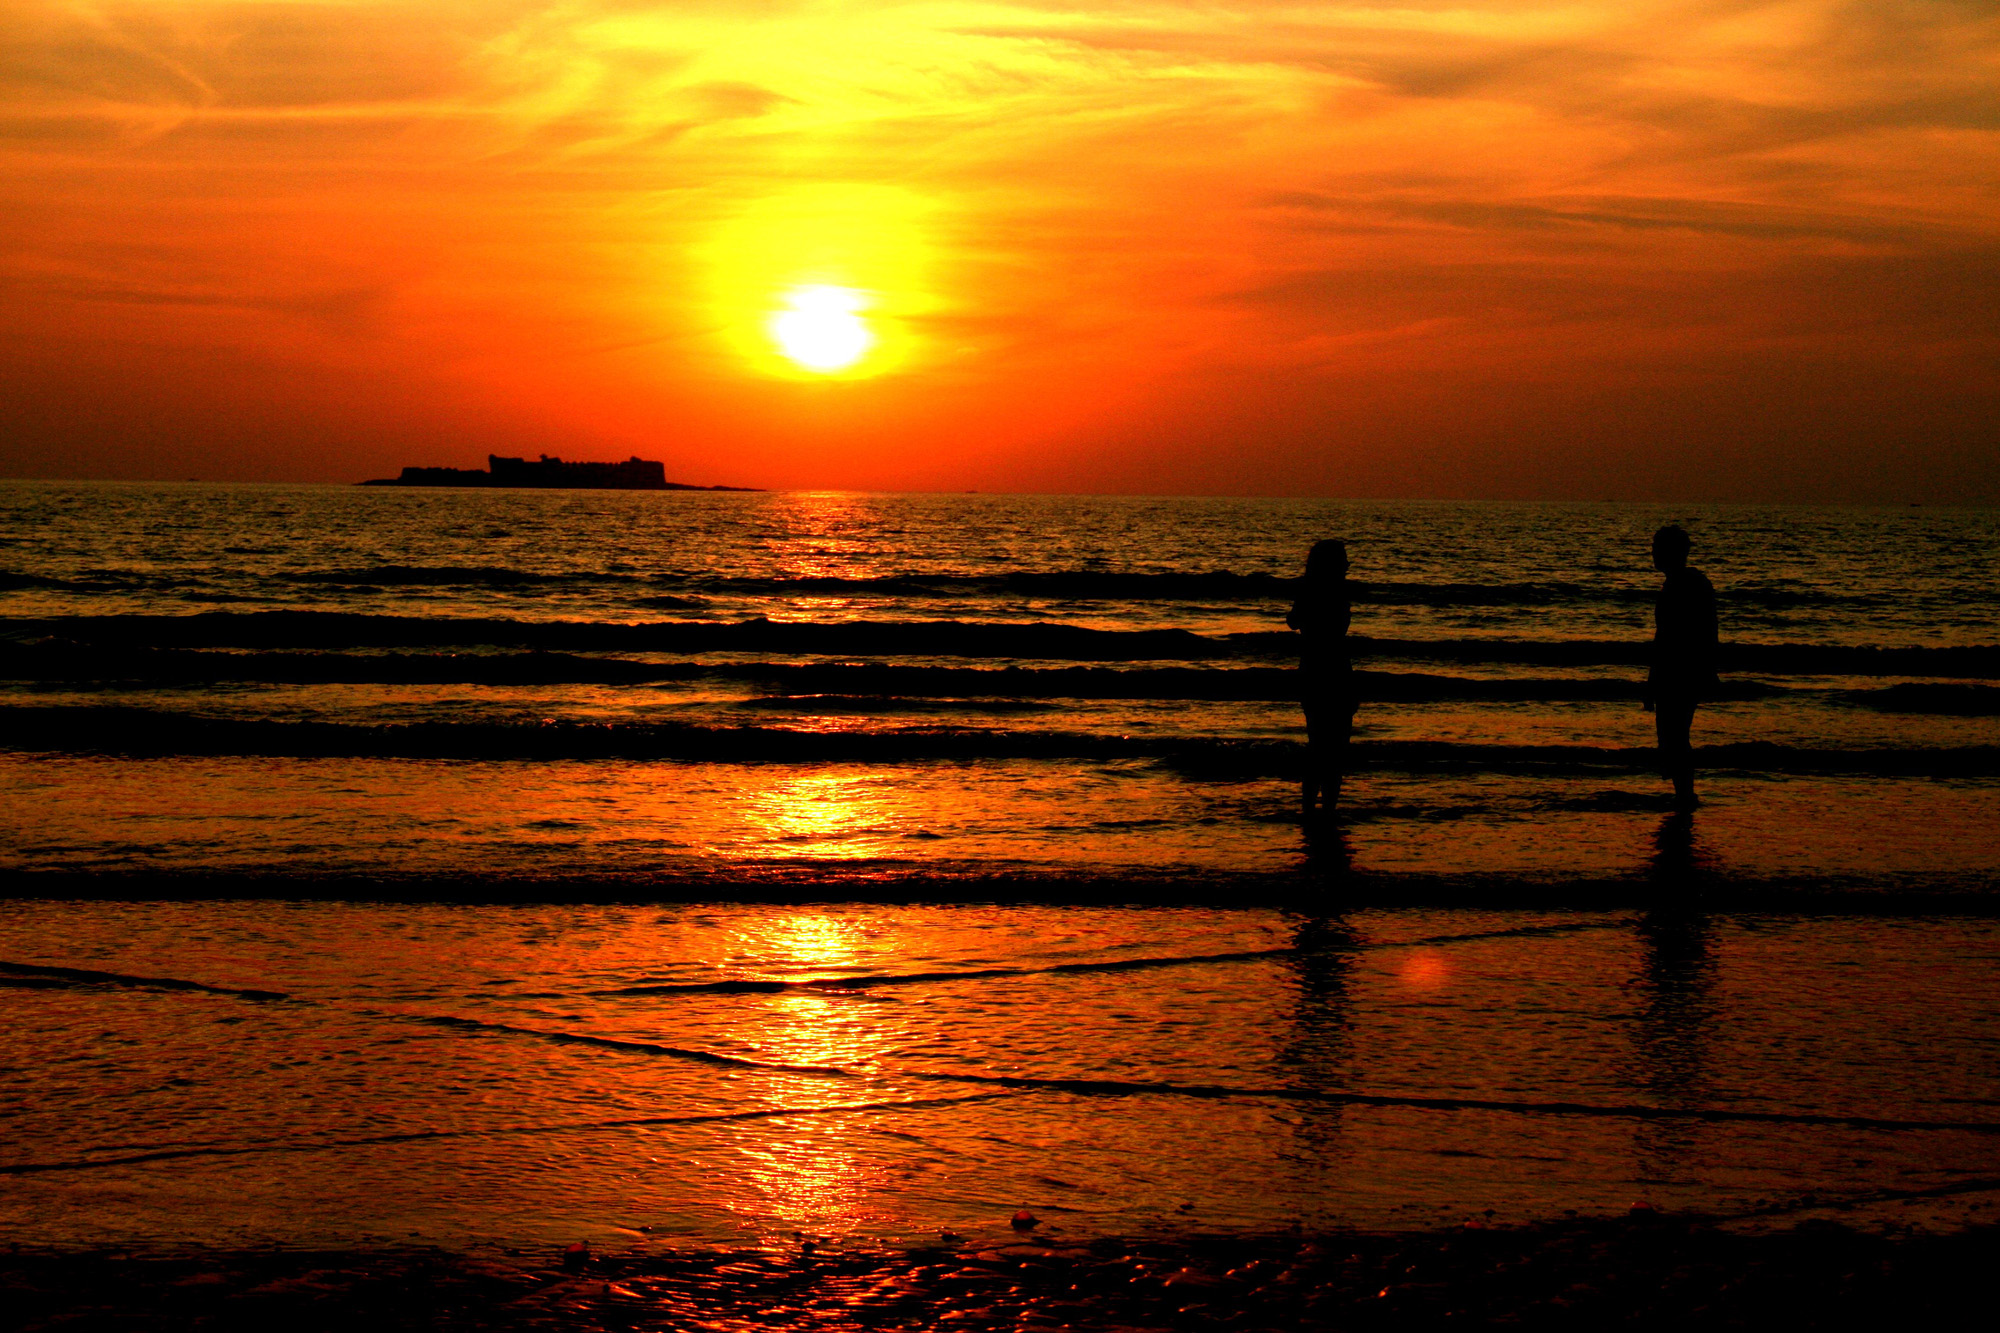 we were at ganapati pule beach in kokan,maharashtra. i was on tne beach at the right moment to catch the golden sunset. I made my daughter and son to stand and captured their silhouttes.